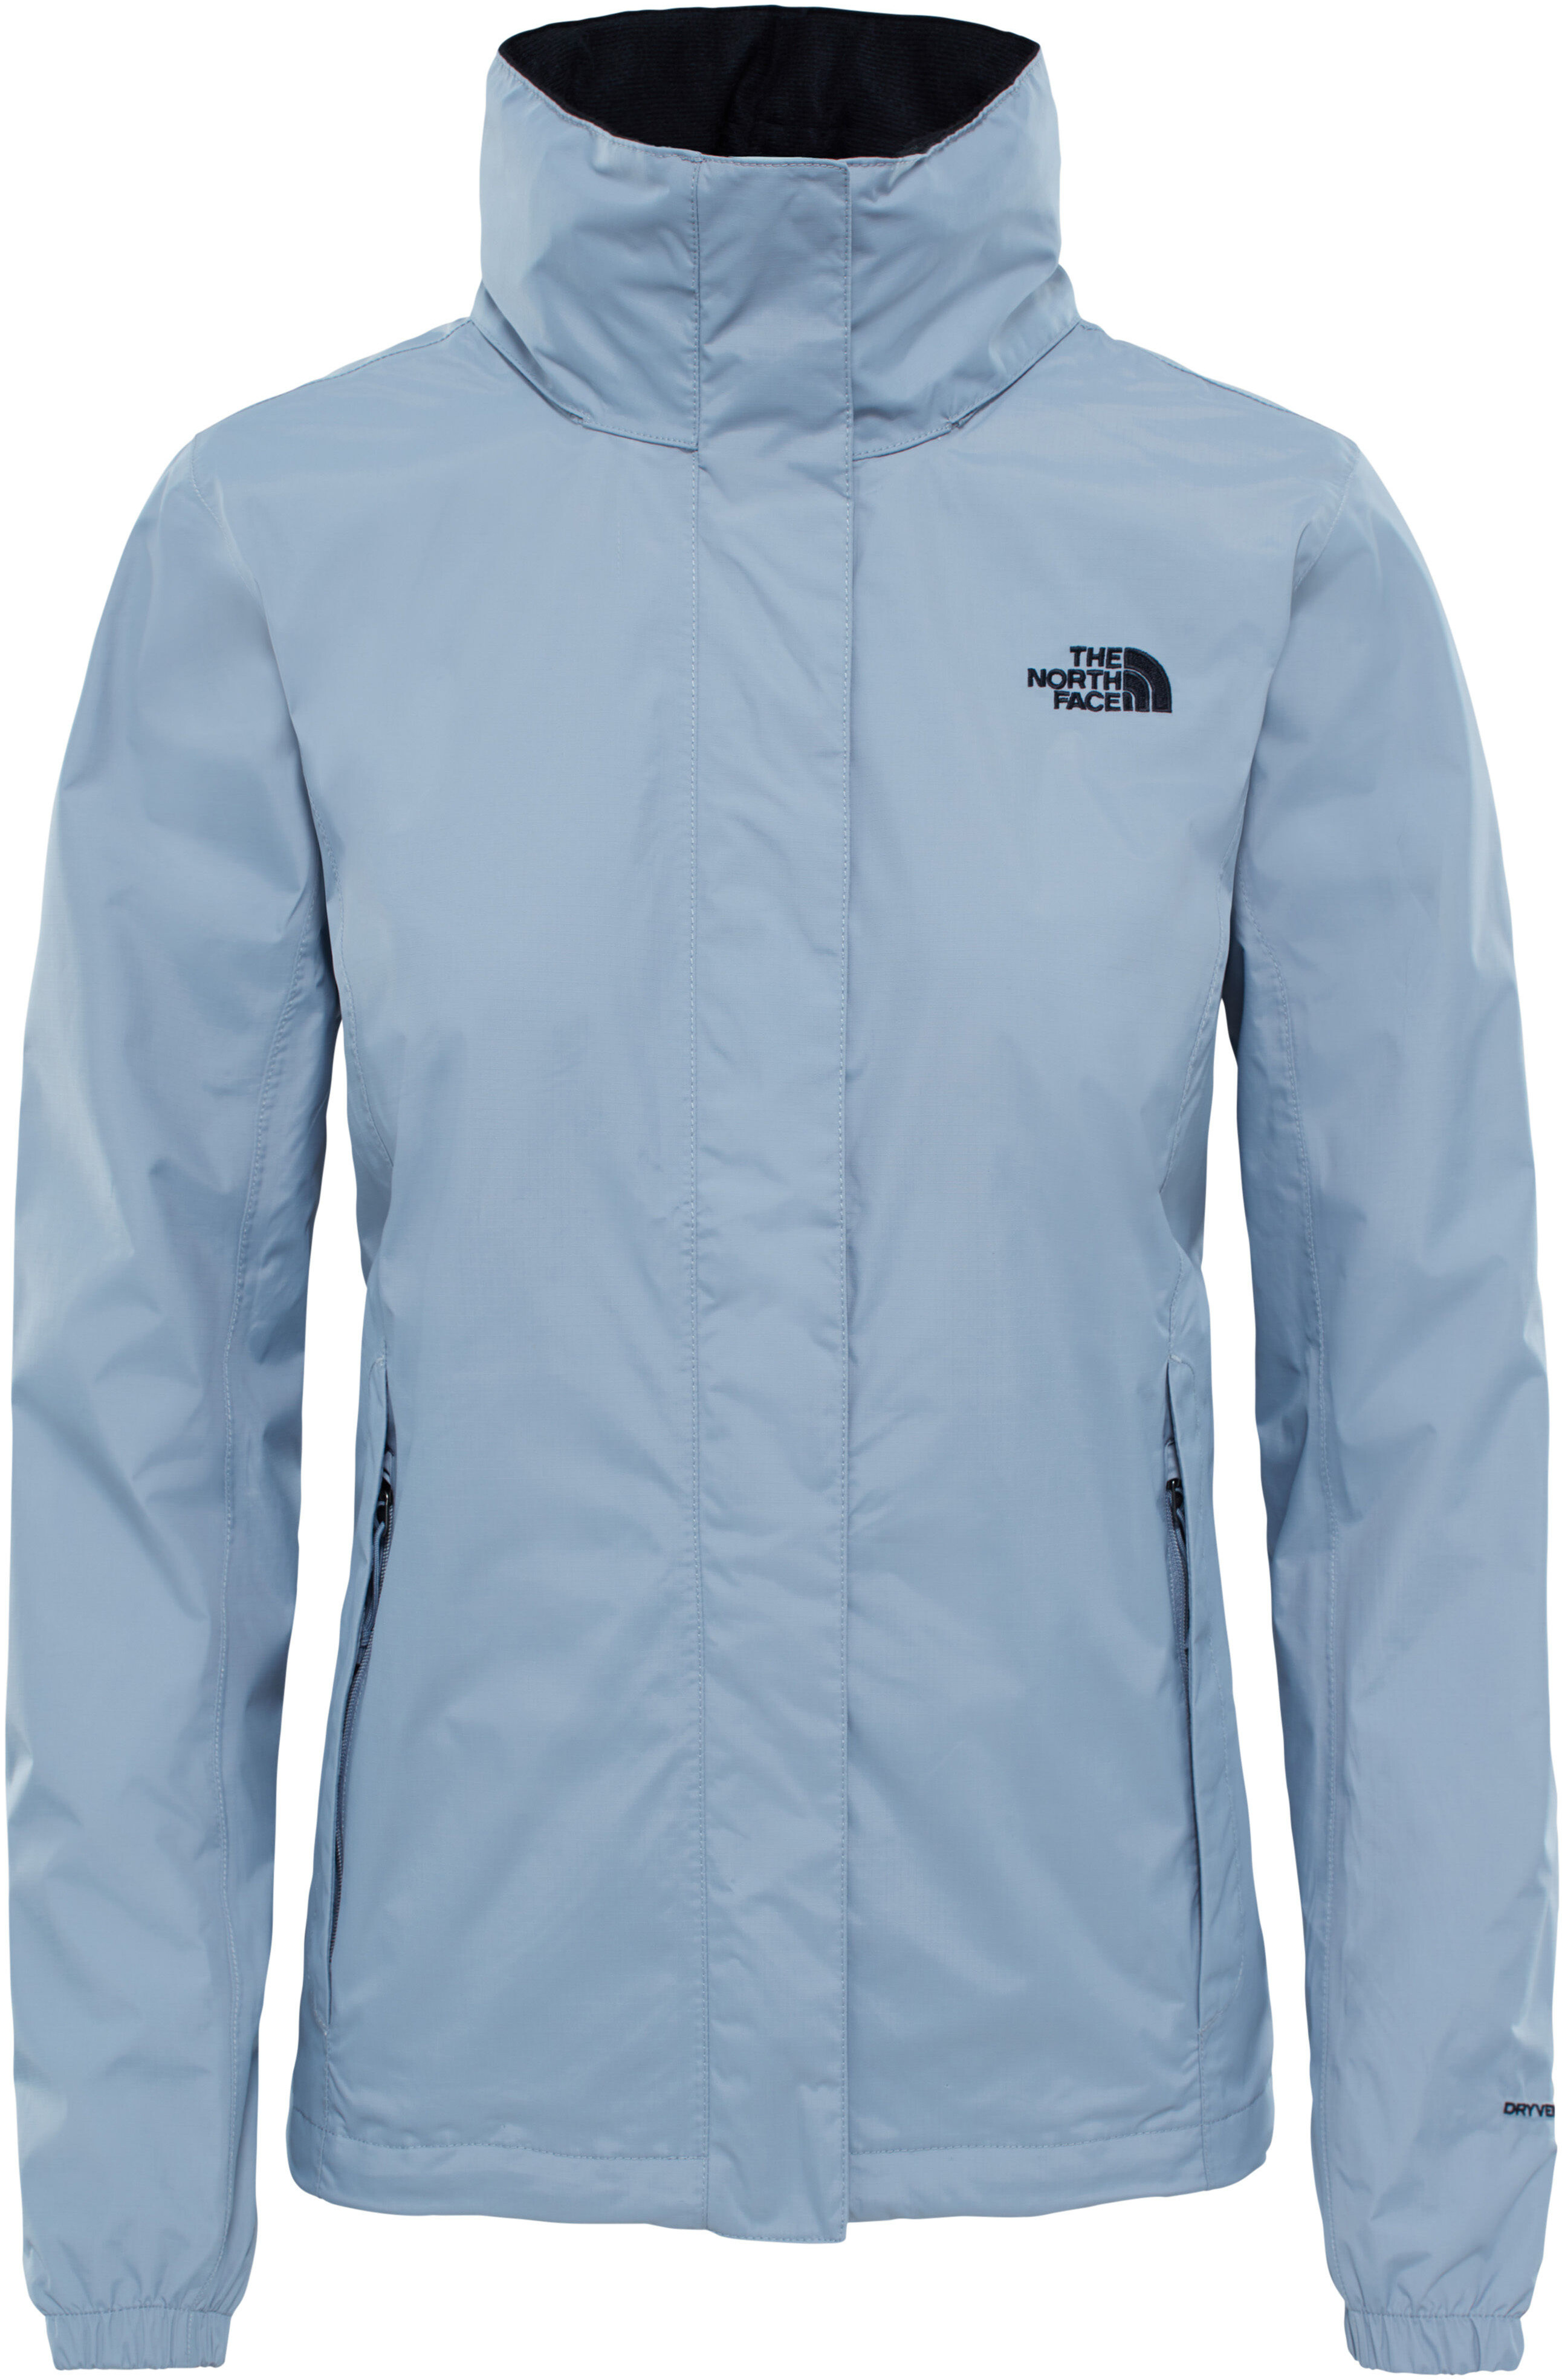 86180e6038 The North Face Resolve 2 Veste Femme, mid grey/tnf black sur CAMPZ !